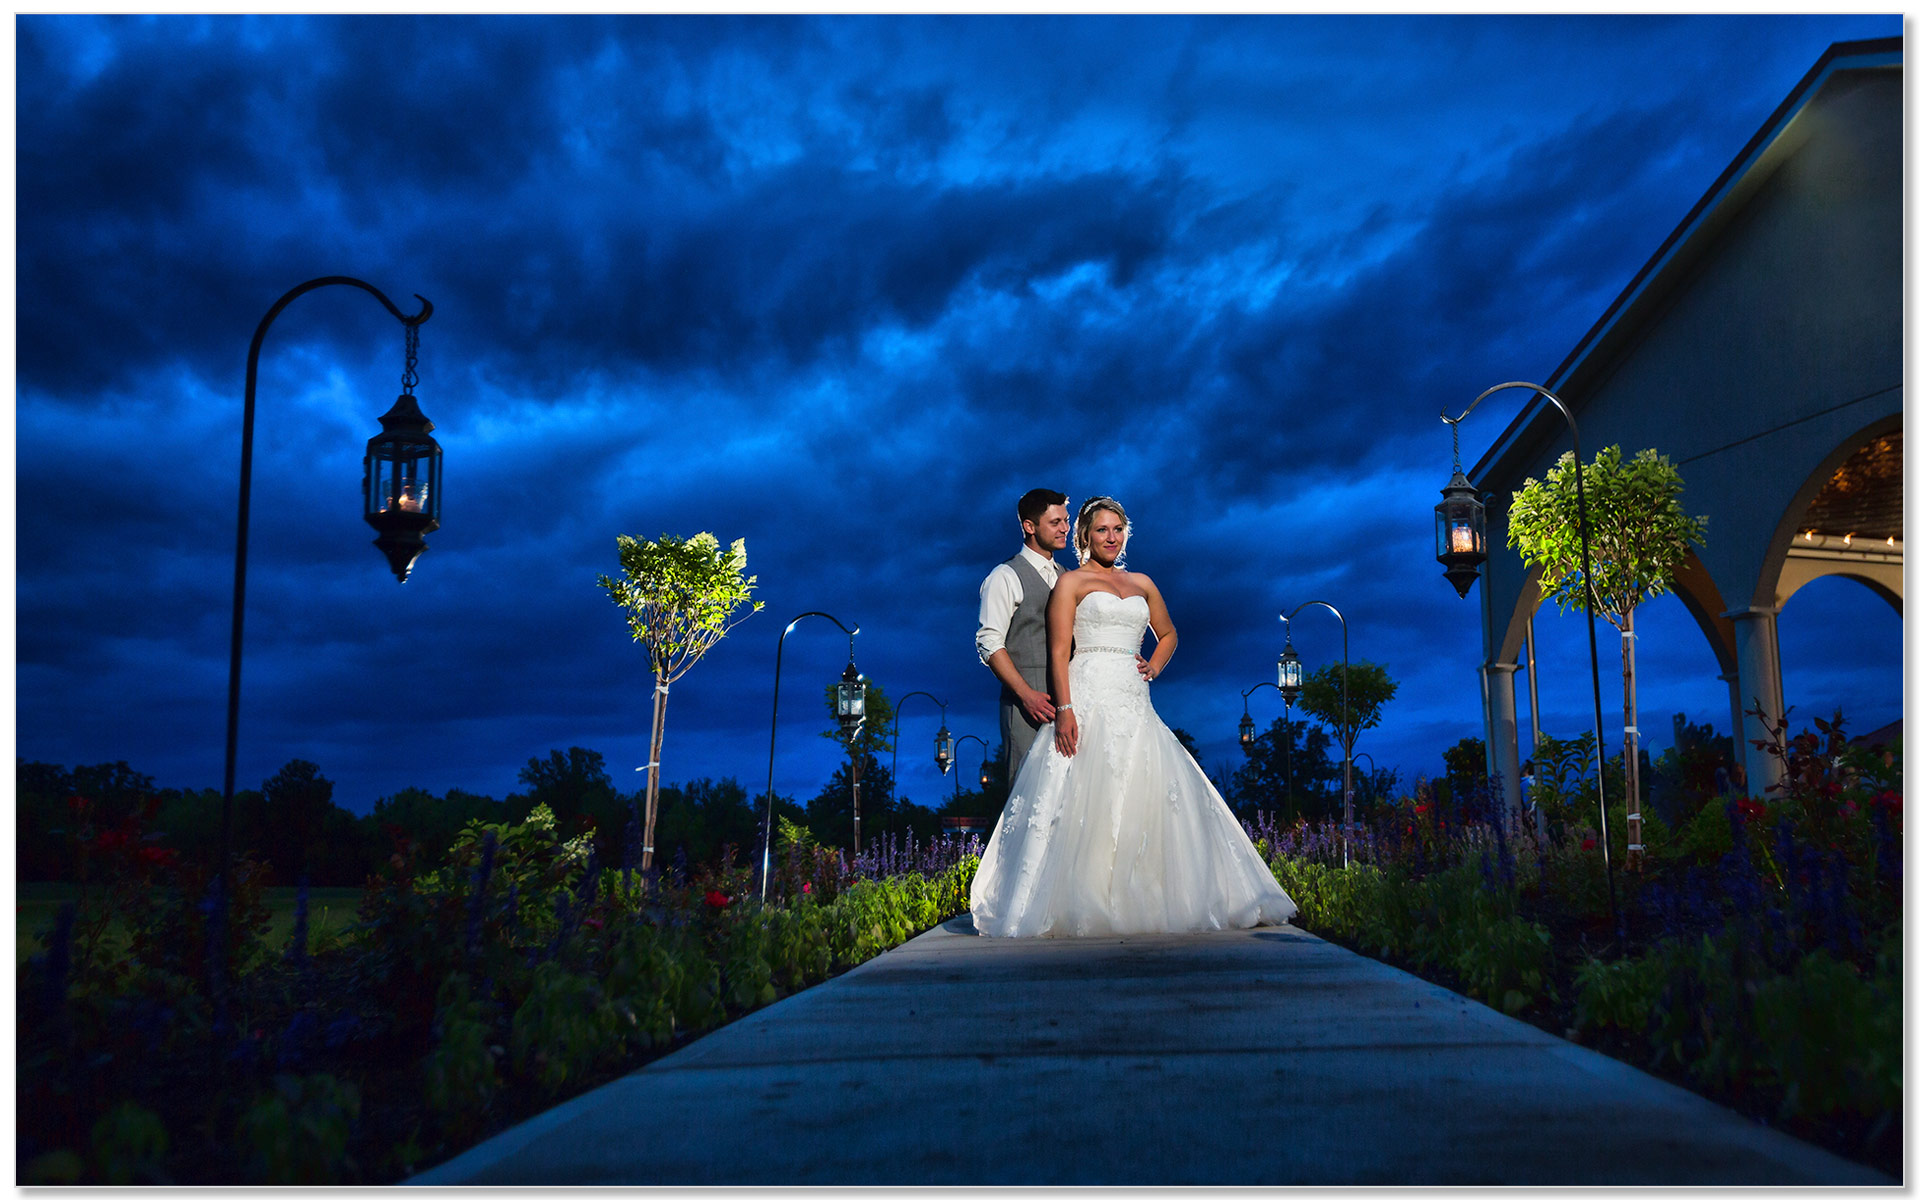 Cedar Springs Pavilion night wedding